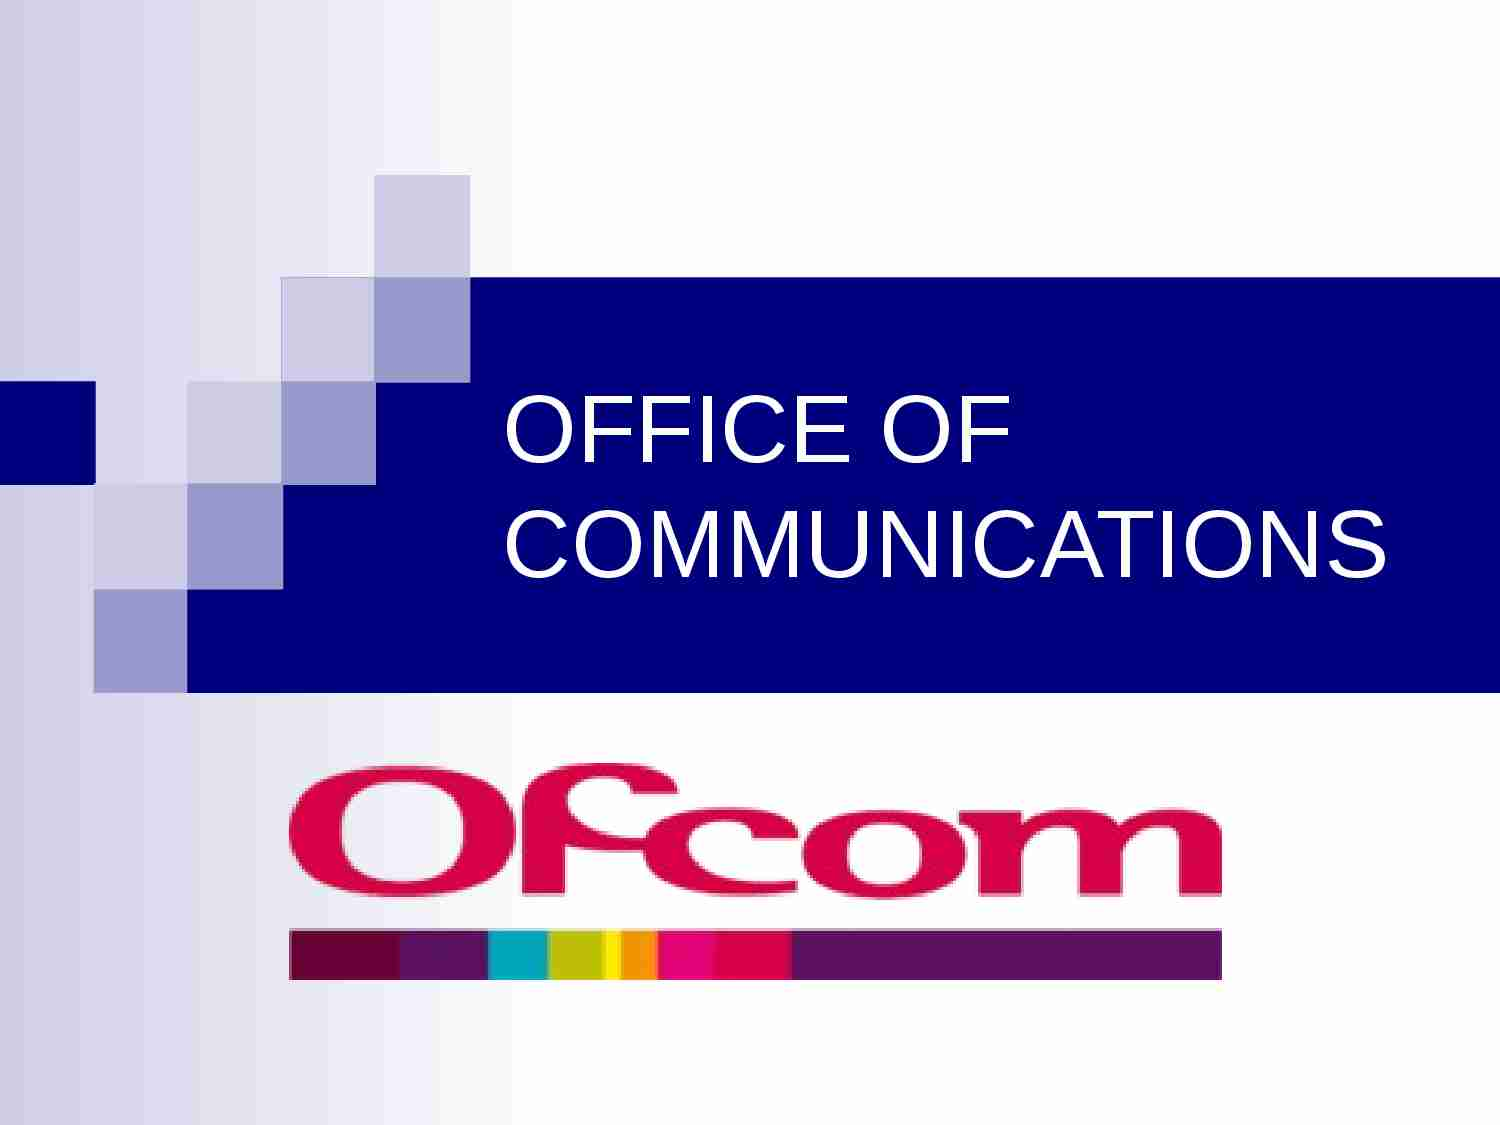 OFFICE OF COMMUNICATIONS-prezentacja - strona 1